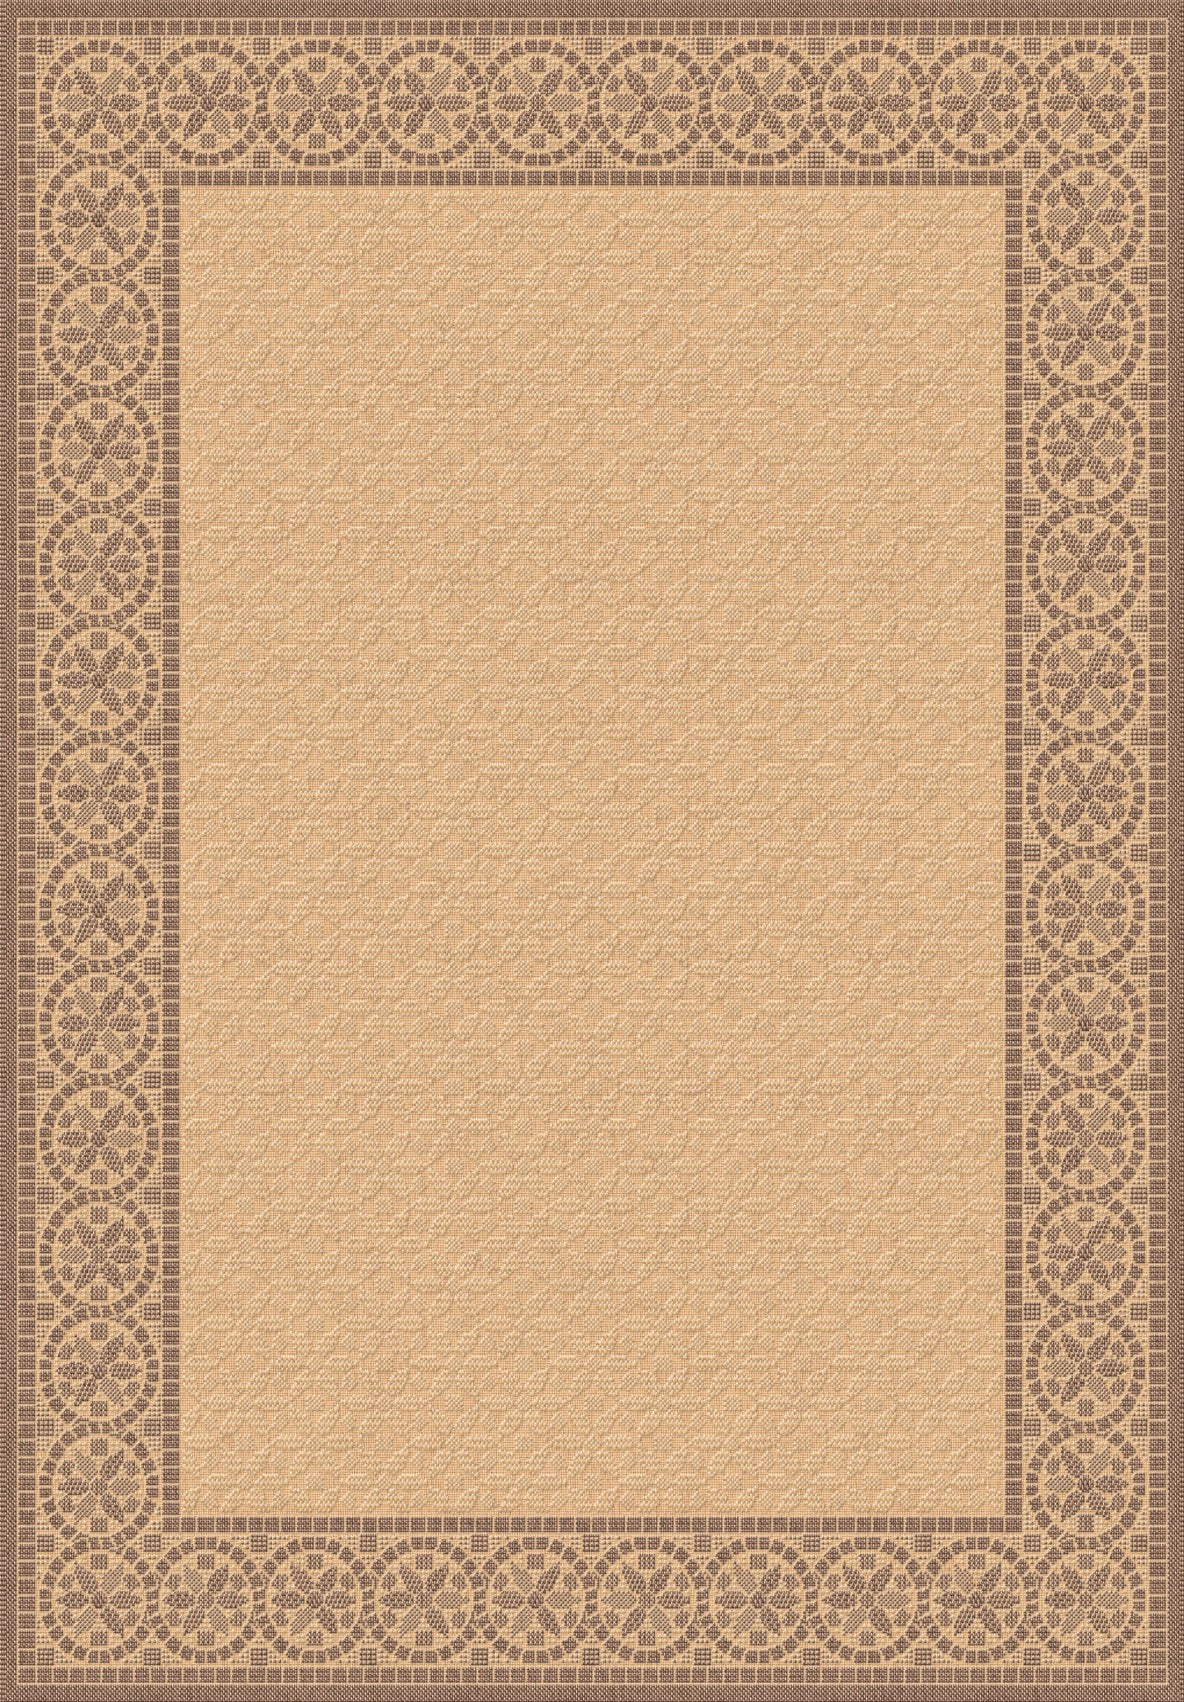 Dynamic Rugs Piazza 2745 Brown Area Rug main image